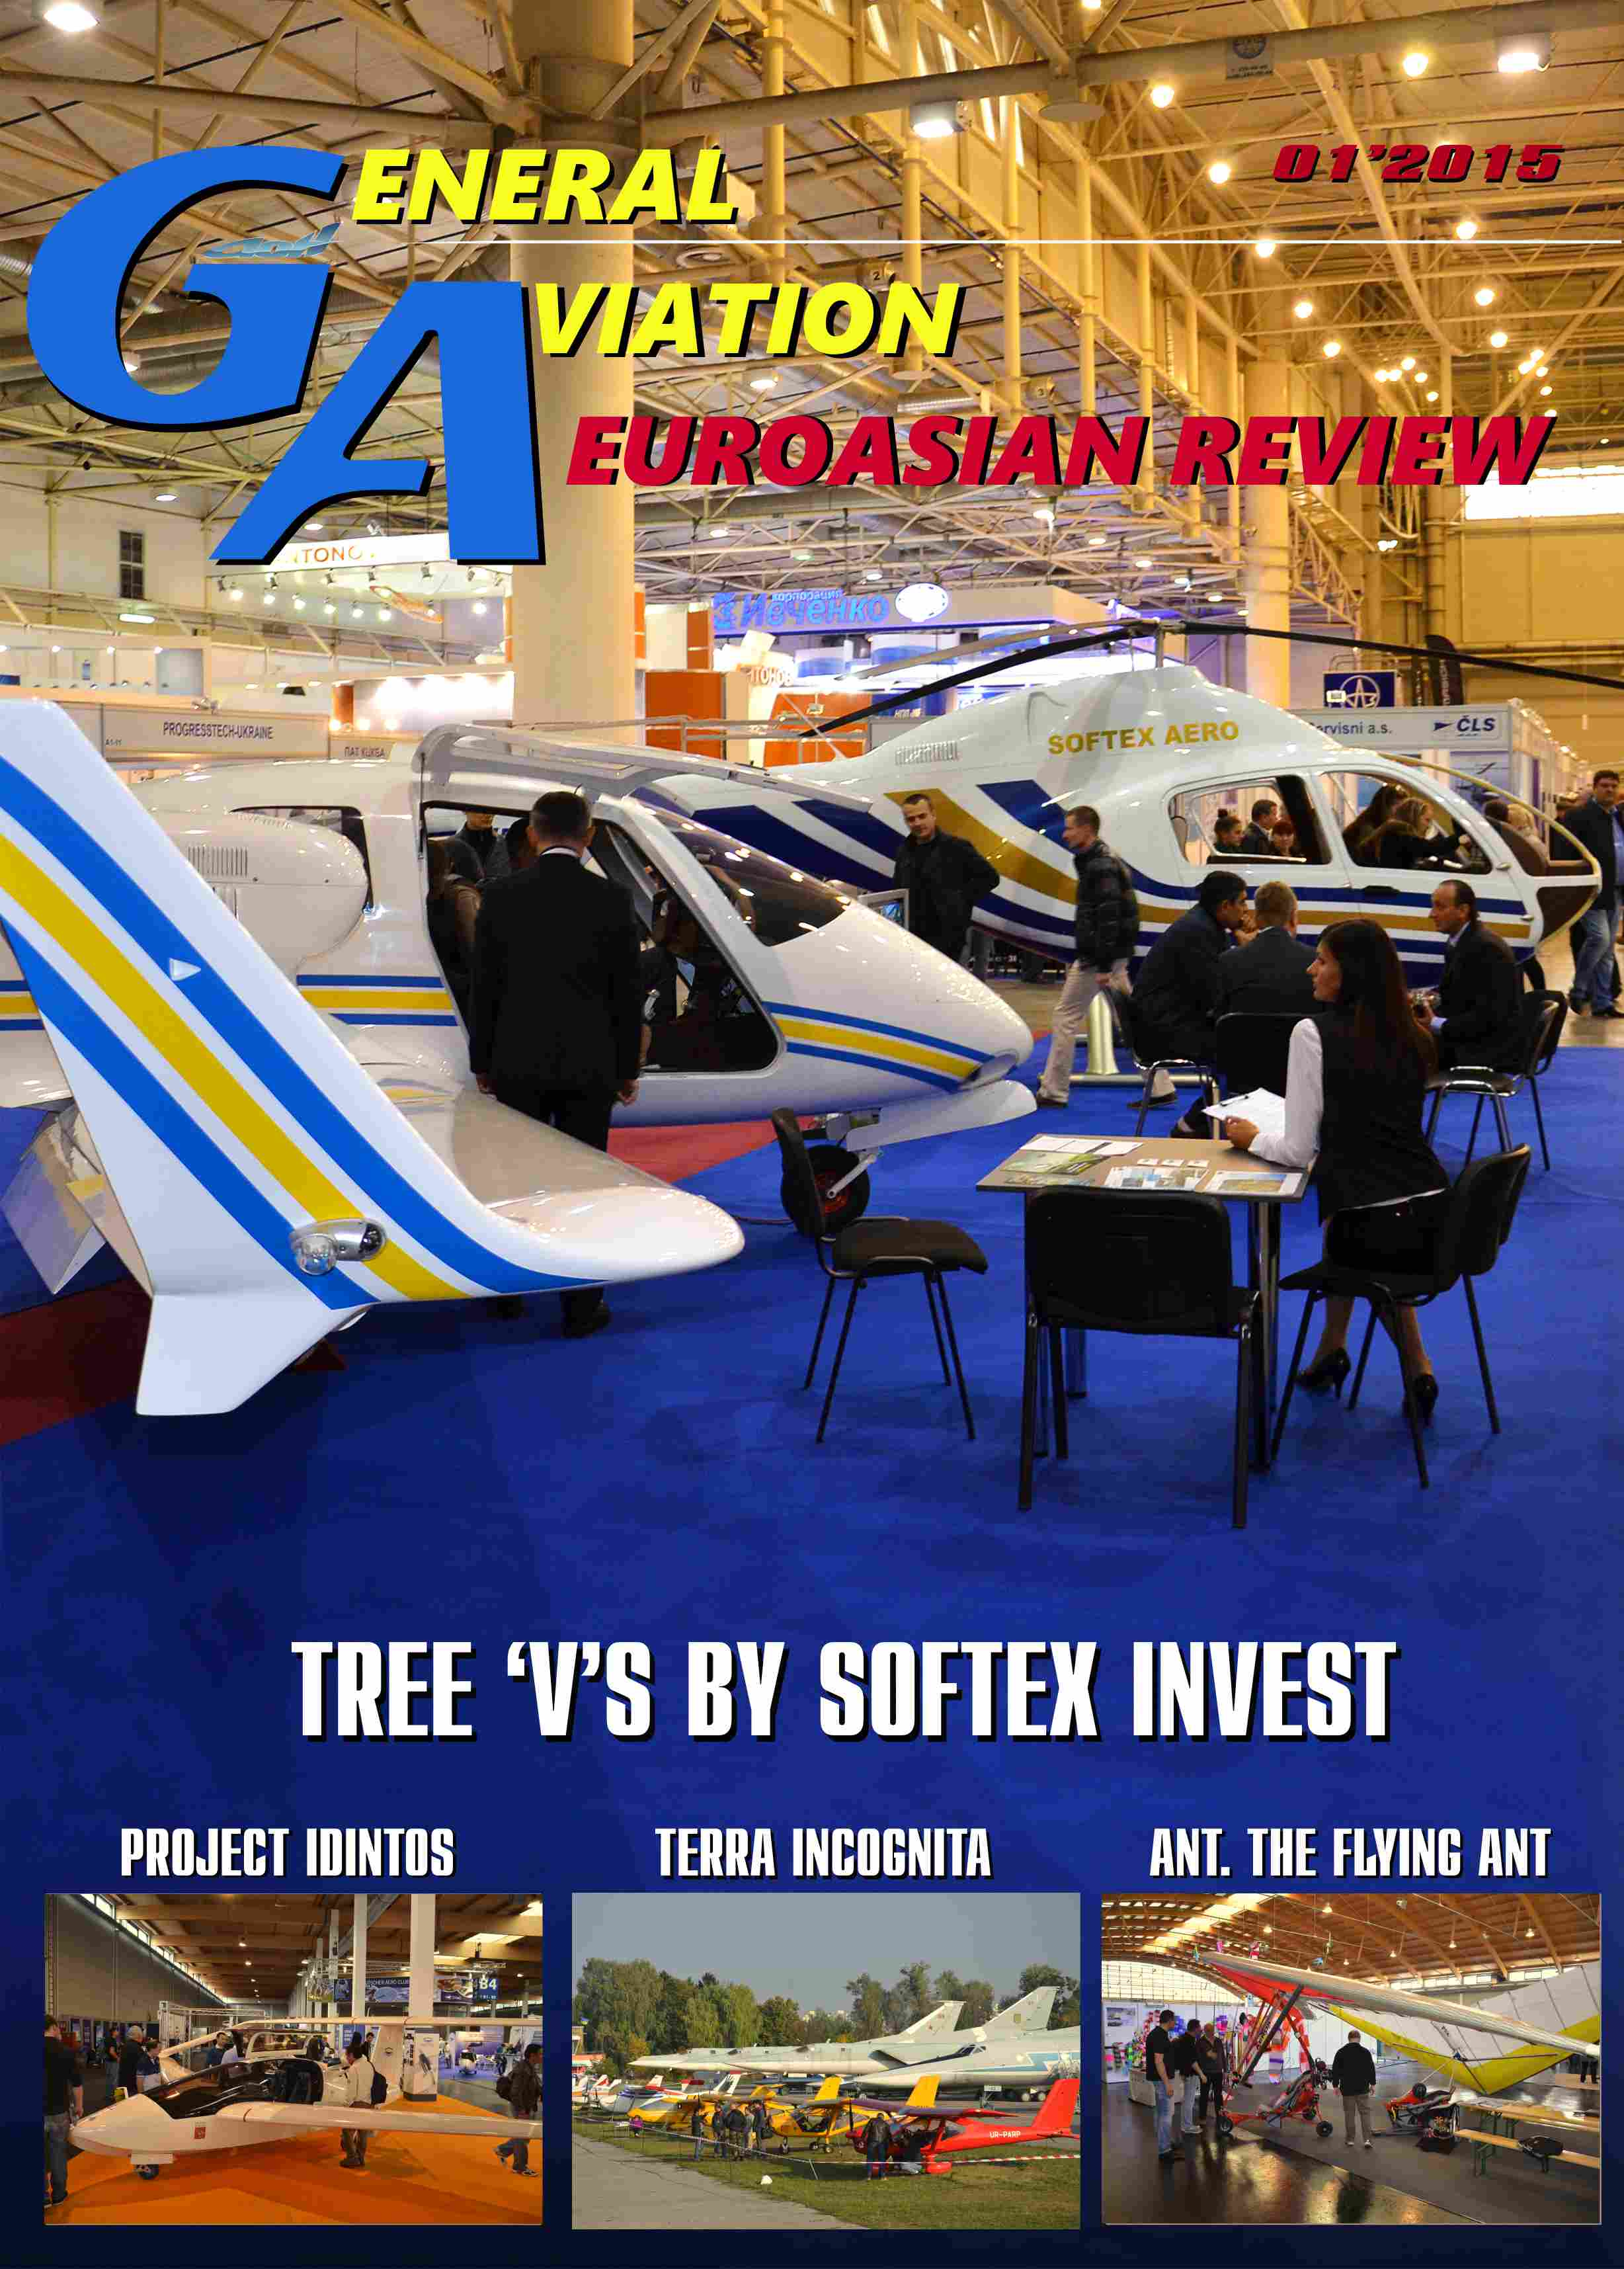 General Aviation EuroAsian Review Cover